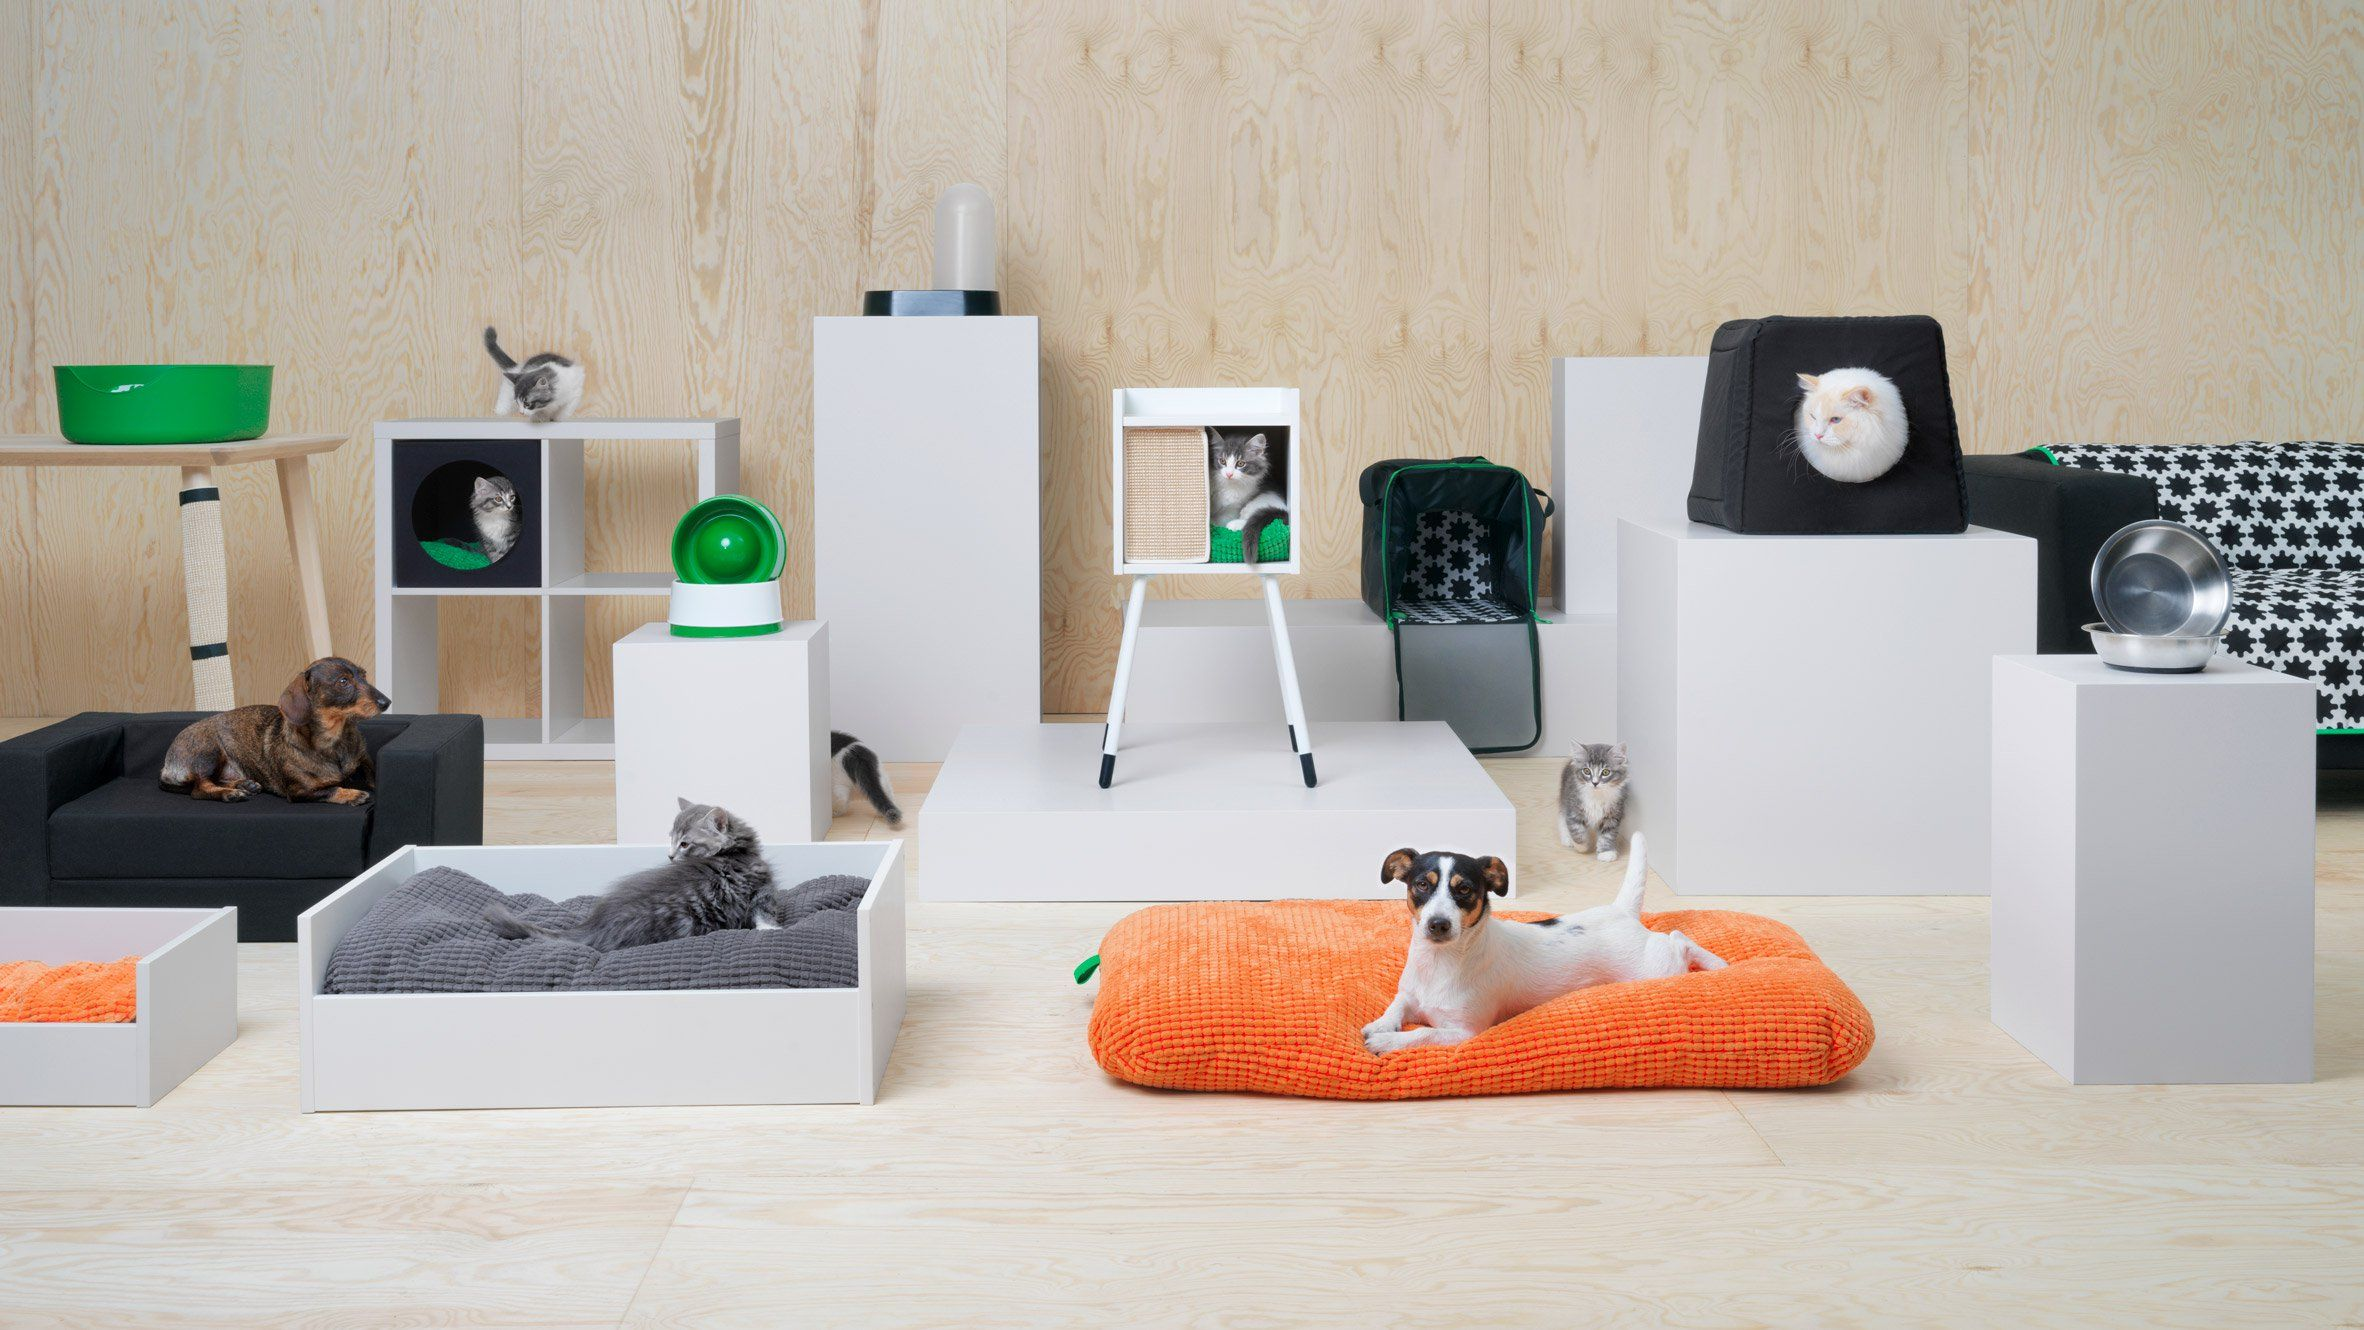 Ikea S First Furniture Collection Designed Specifically For Pets Includes A Treehouse Like Cat Hideaway An Pet Furniture Retail Furniture Furniture Collection